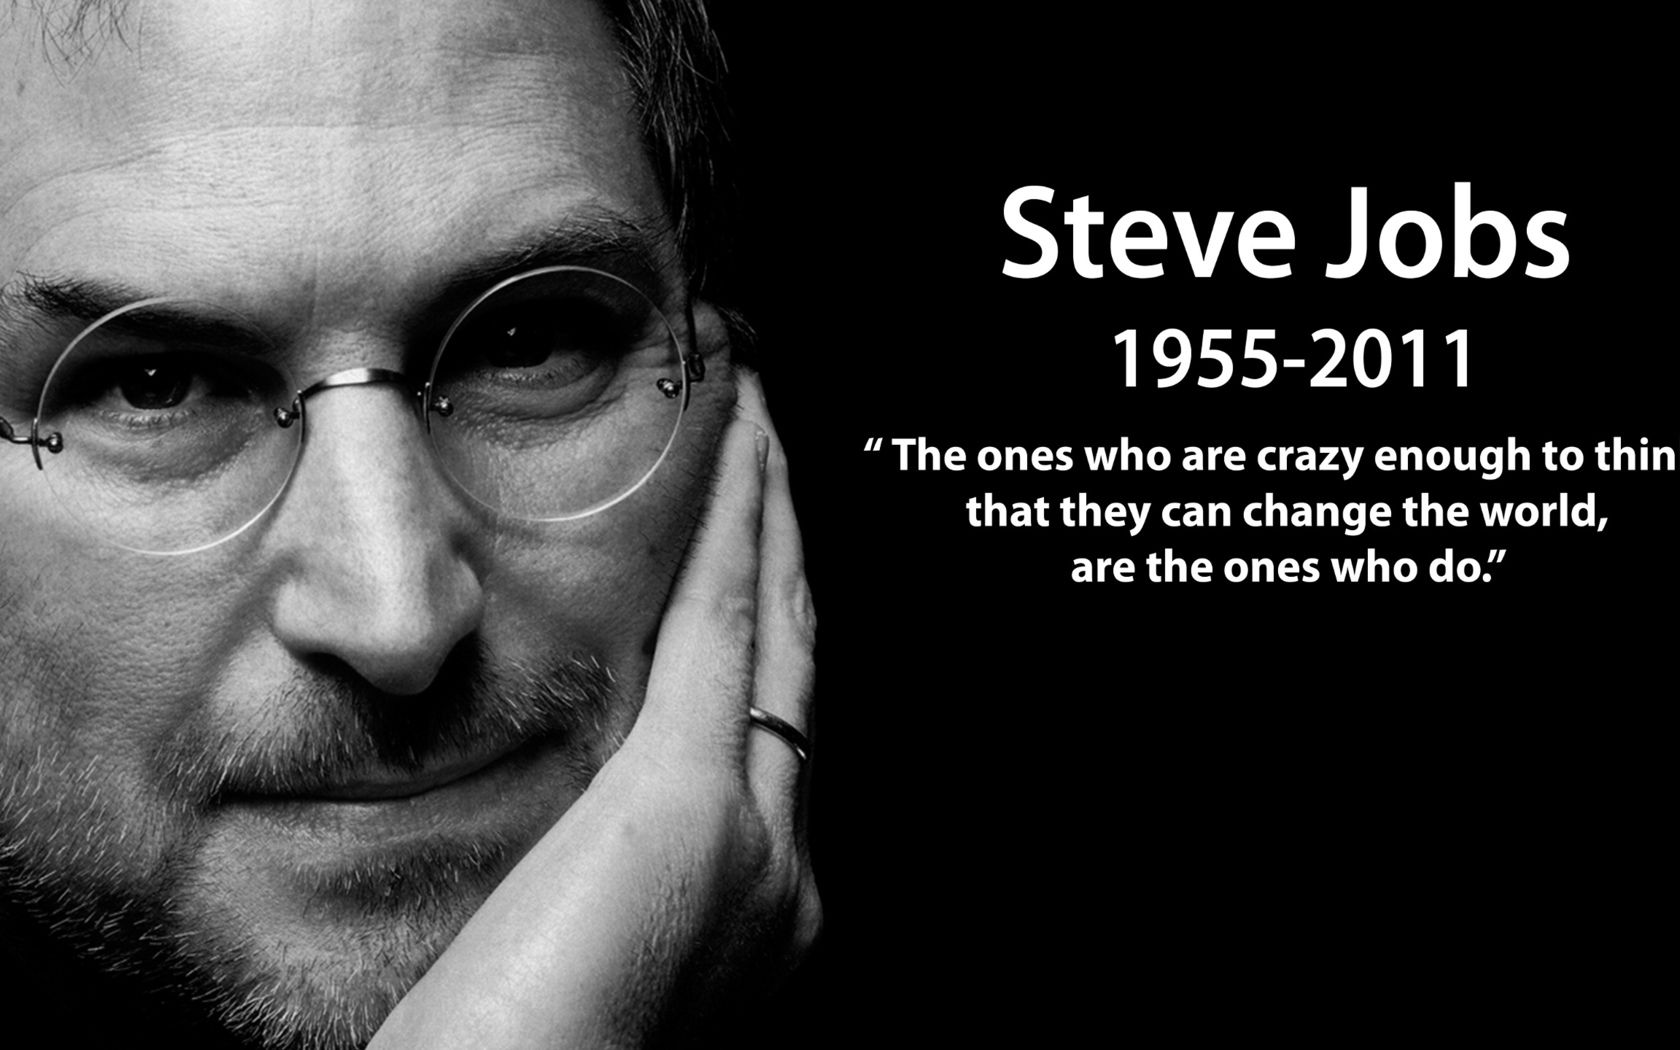 best images about quotes autumn trees 17 best images about quotes autumn trees engineering and steve jobs